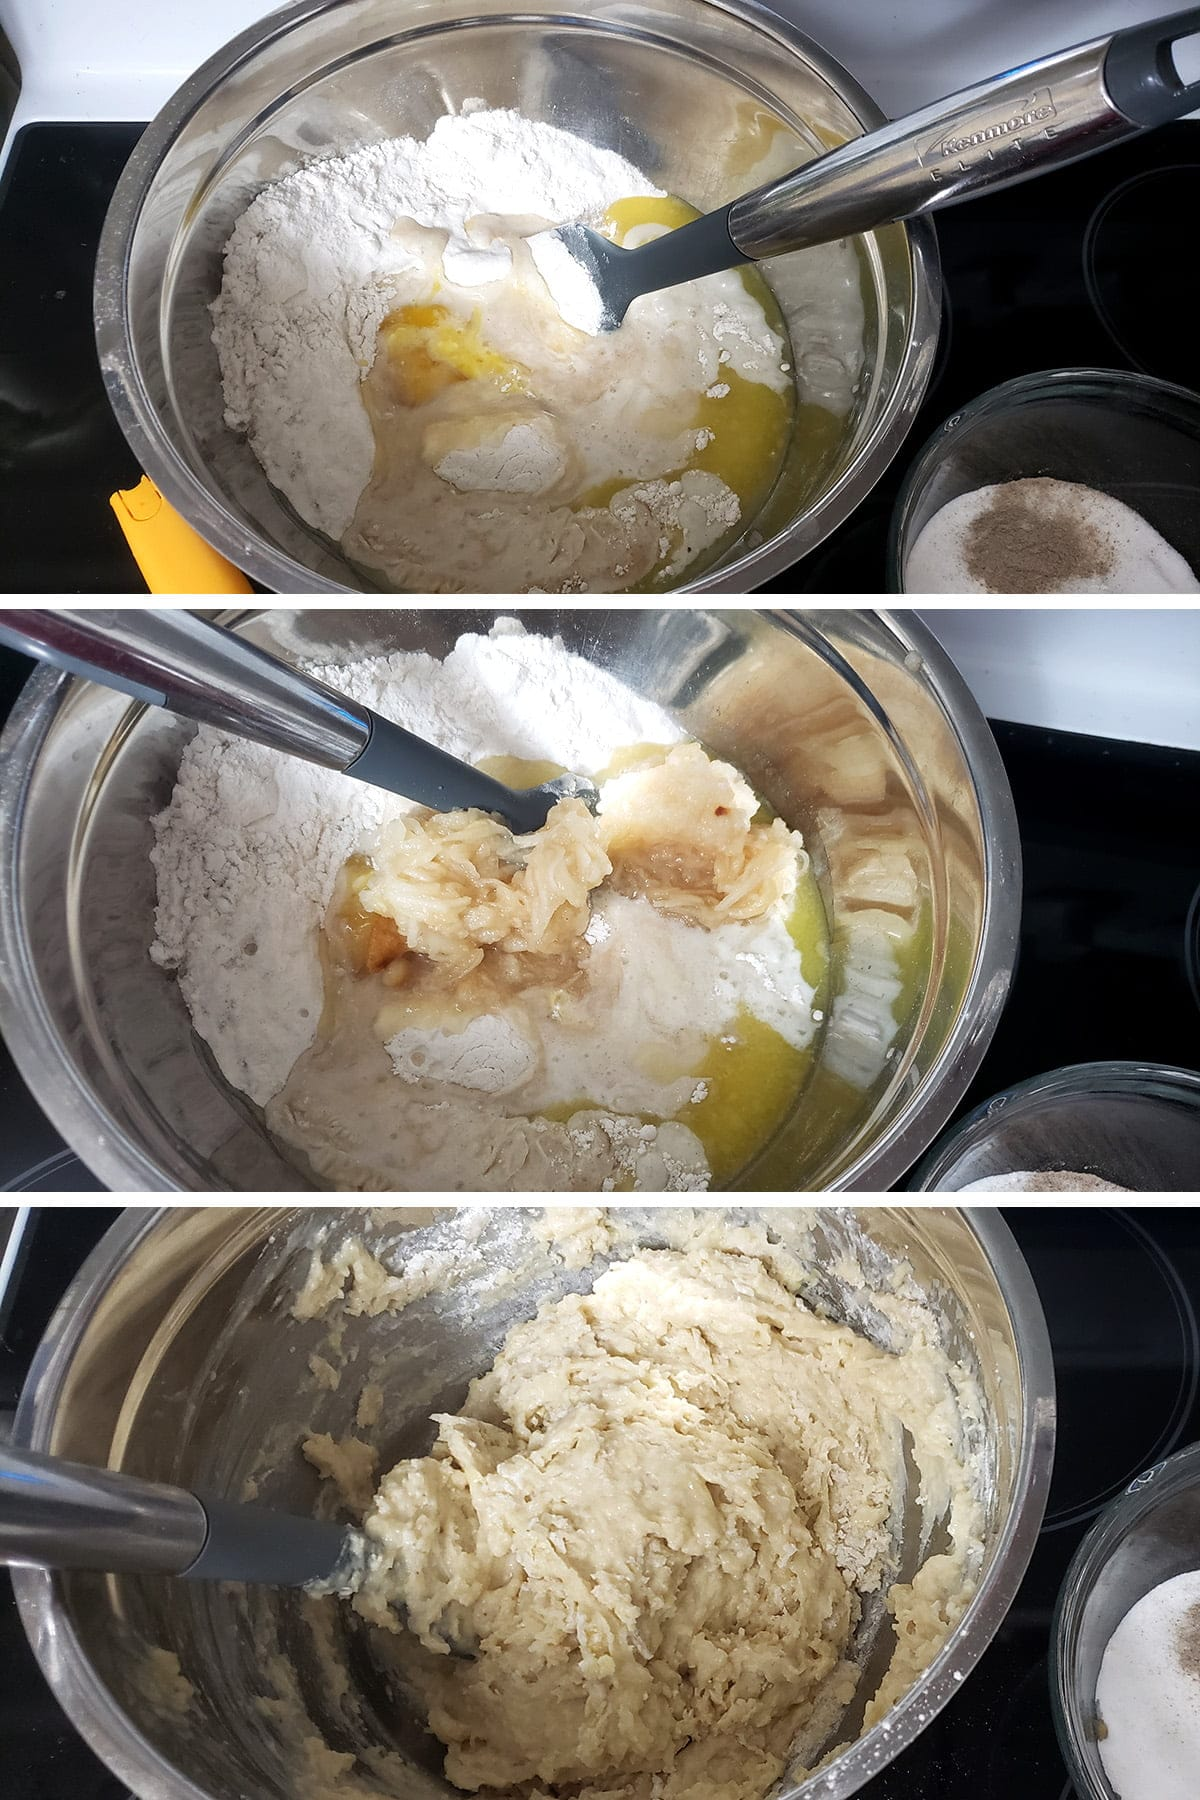 A 3 part compilation image showing the wet ingredients being added to the dry and being mixed in to form the batter.